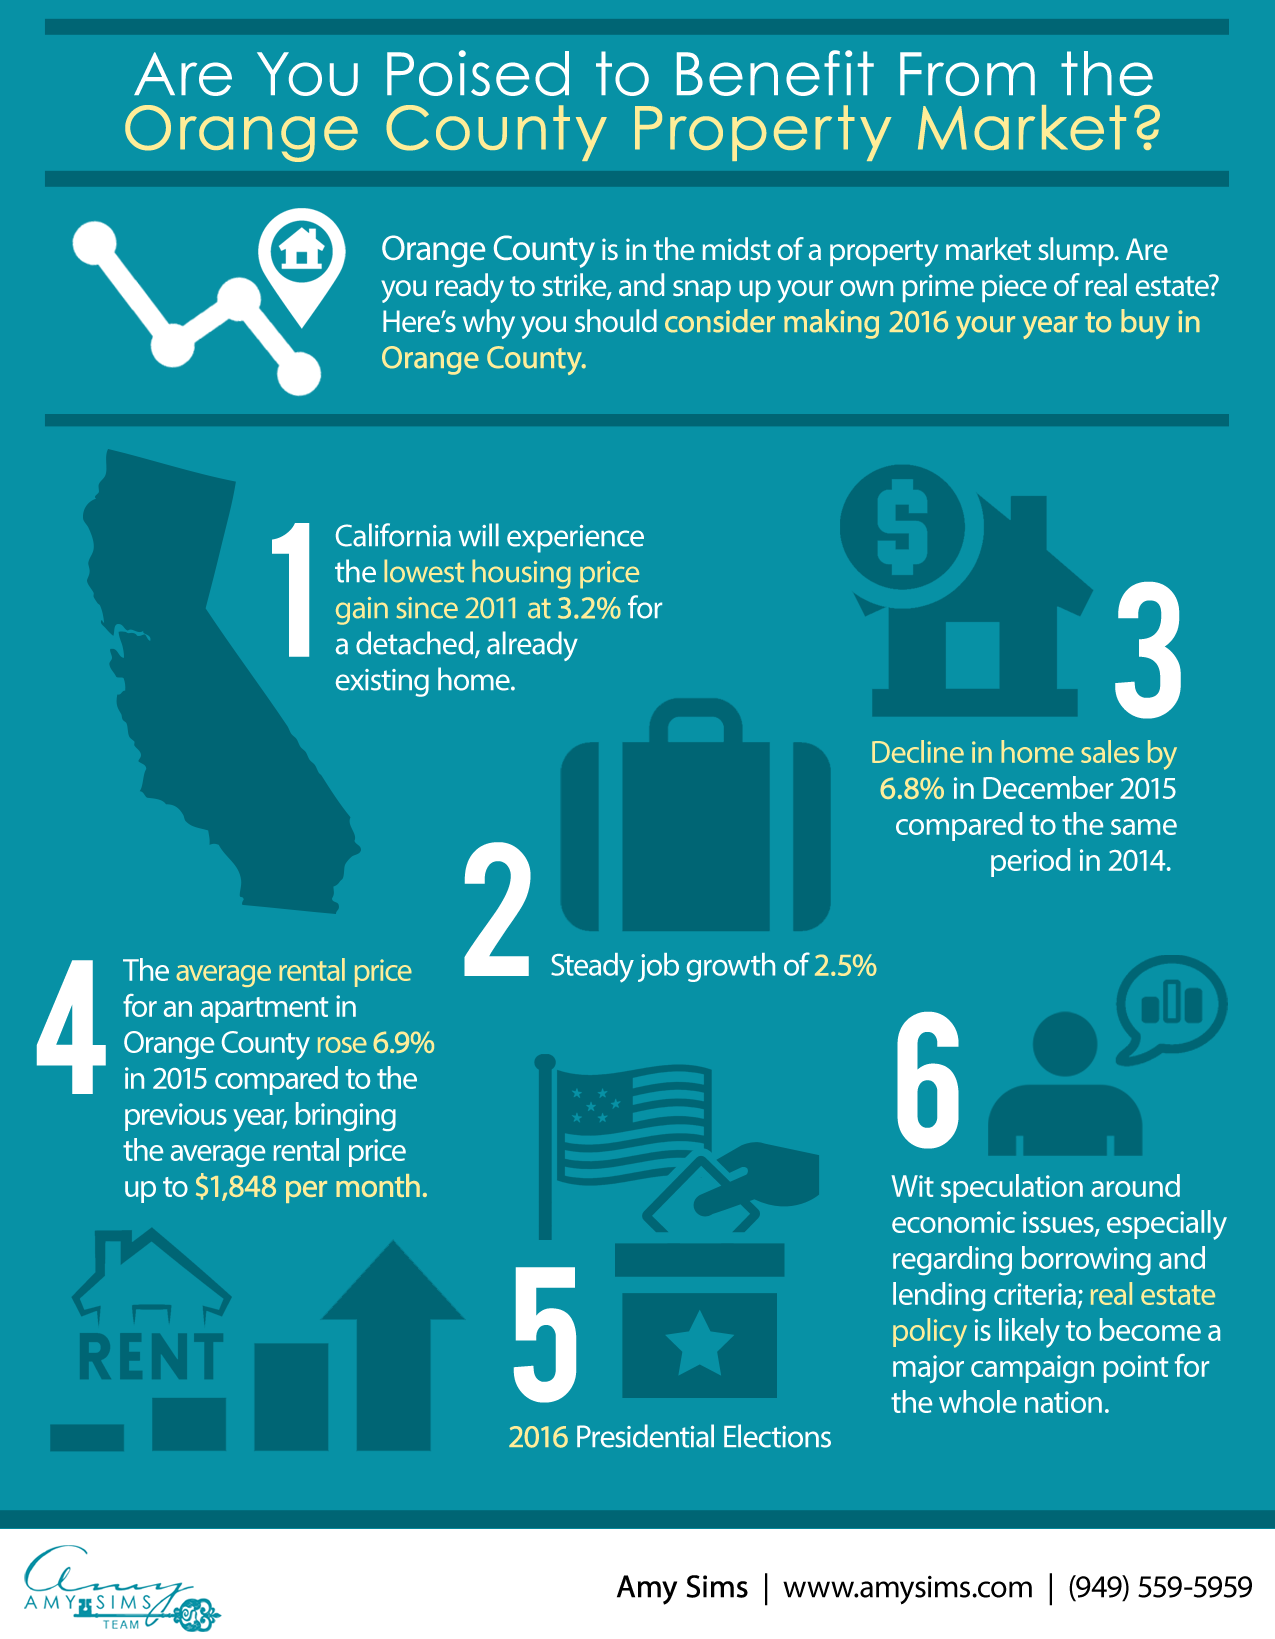 Benefit from Orange County Property Market Image